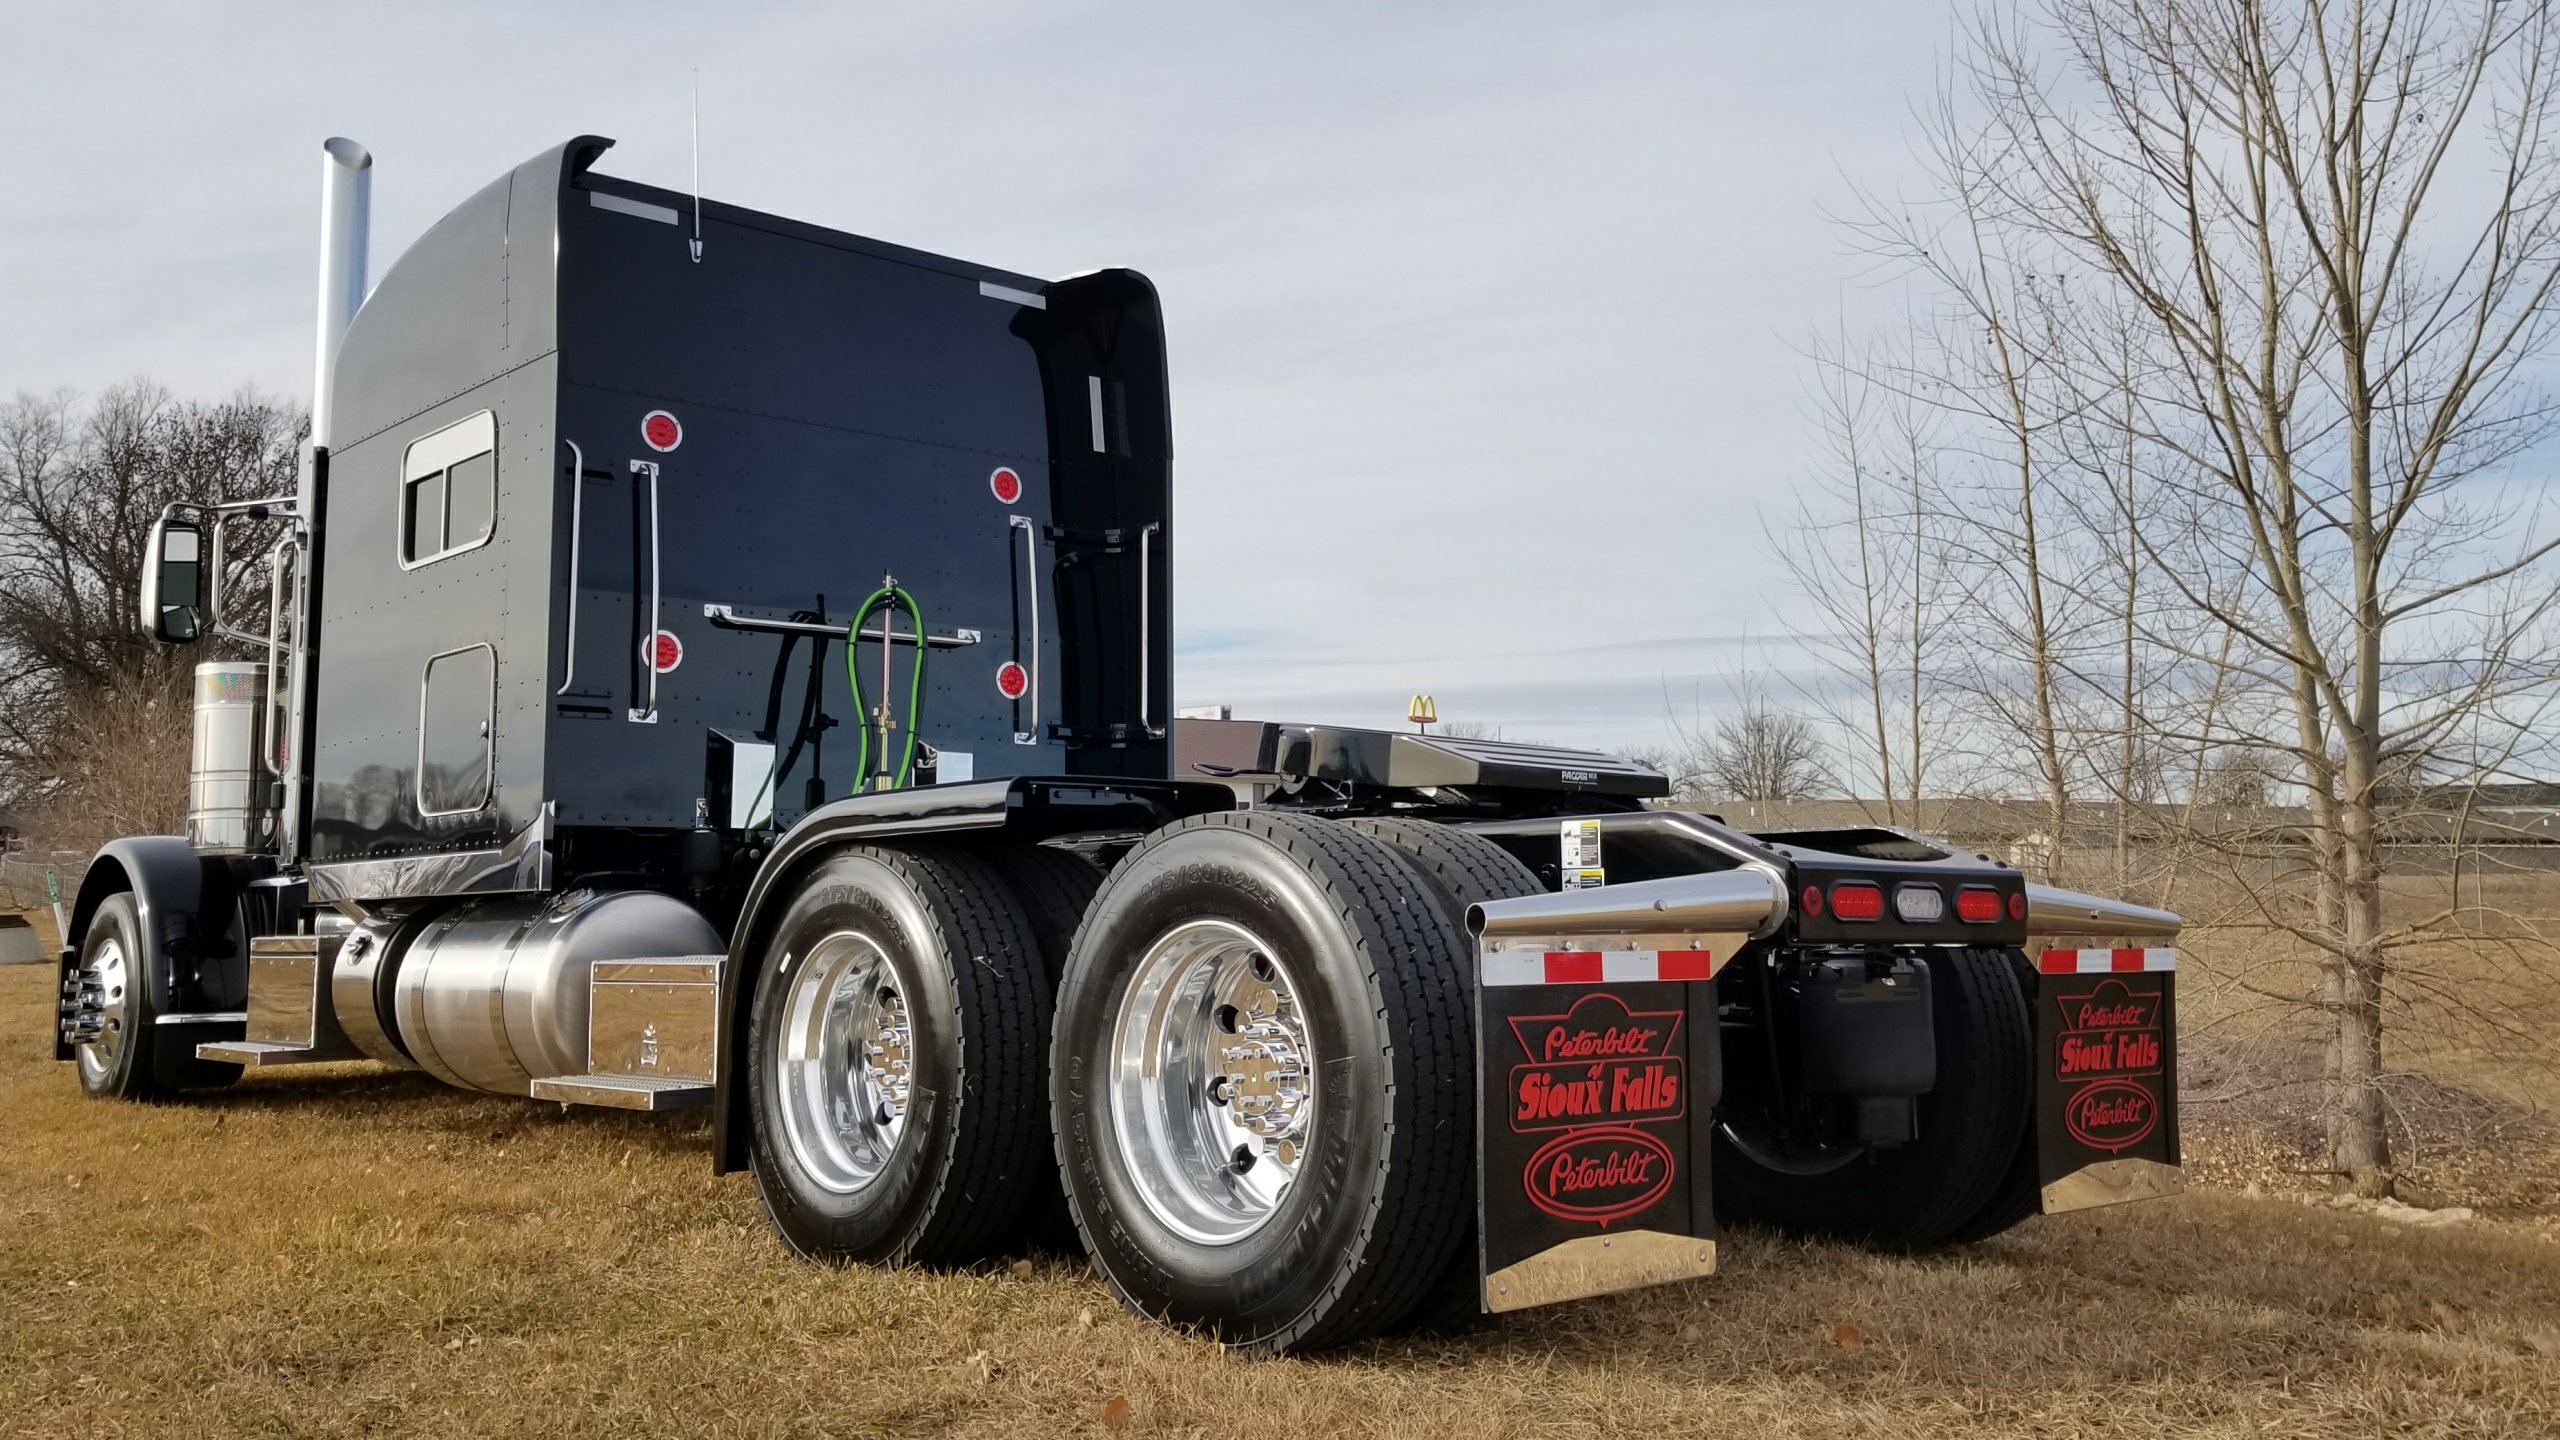 Uncategorized Archives - Page 61 of 107 - Peterbilt of Sioux Falls